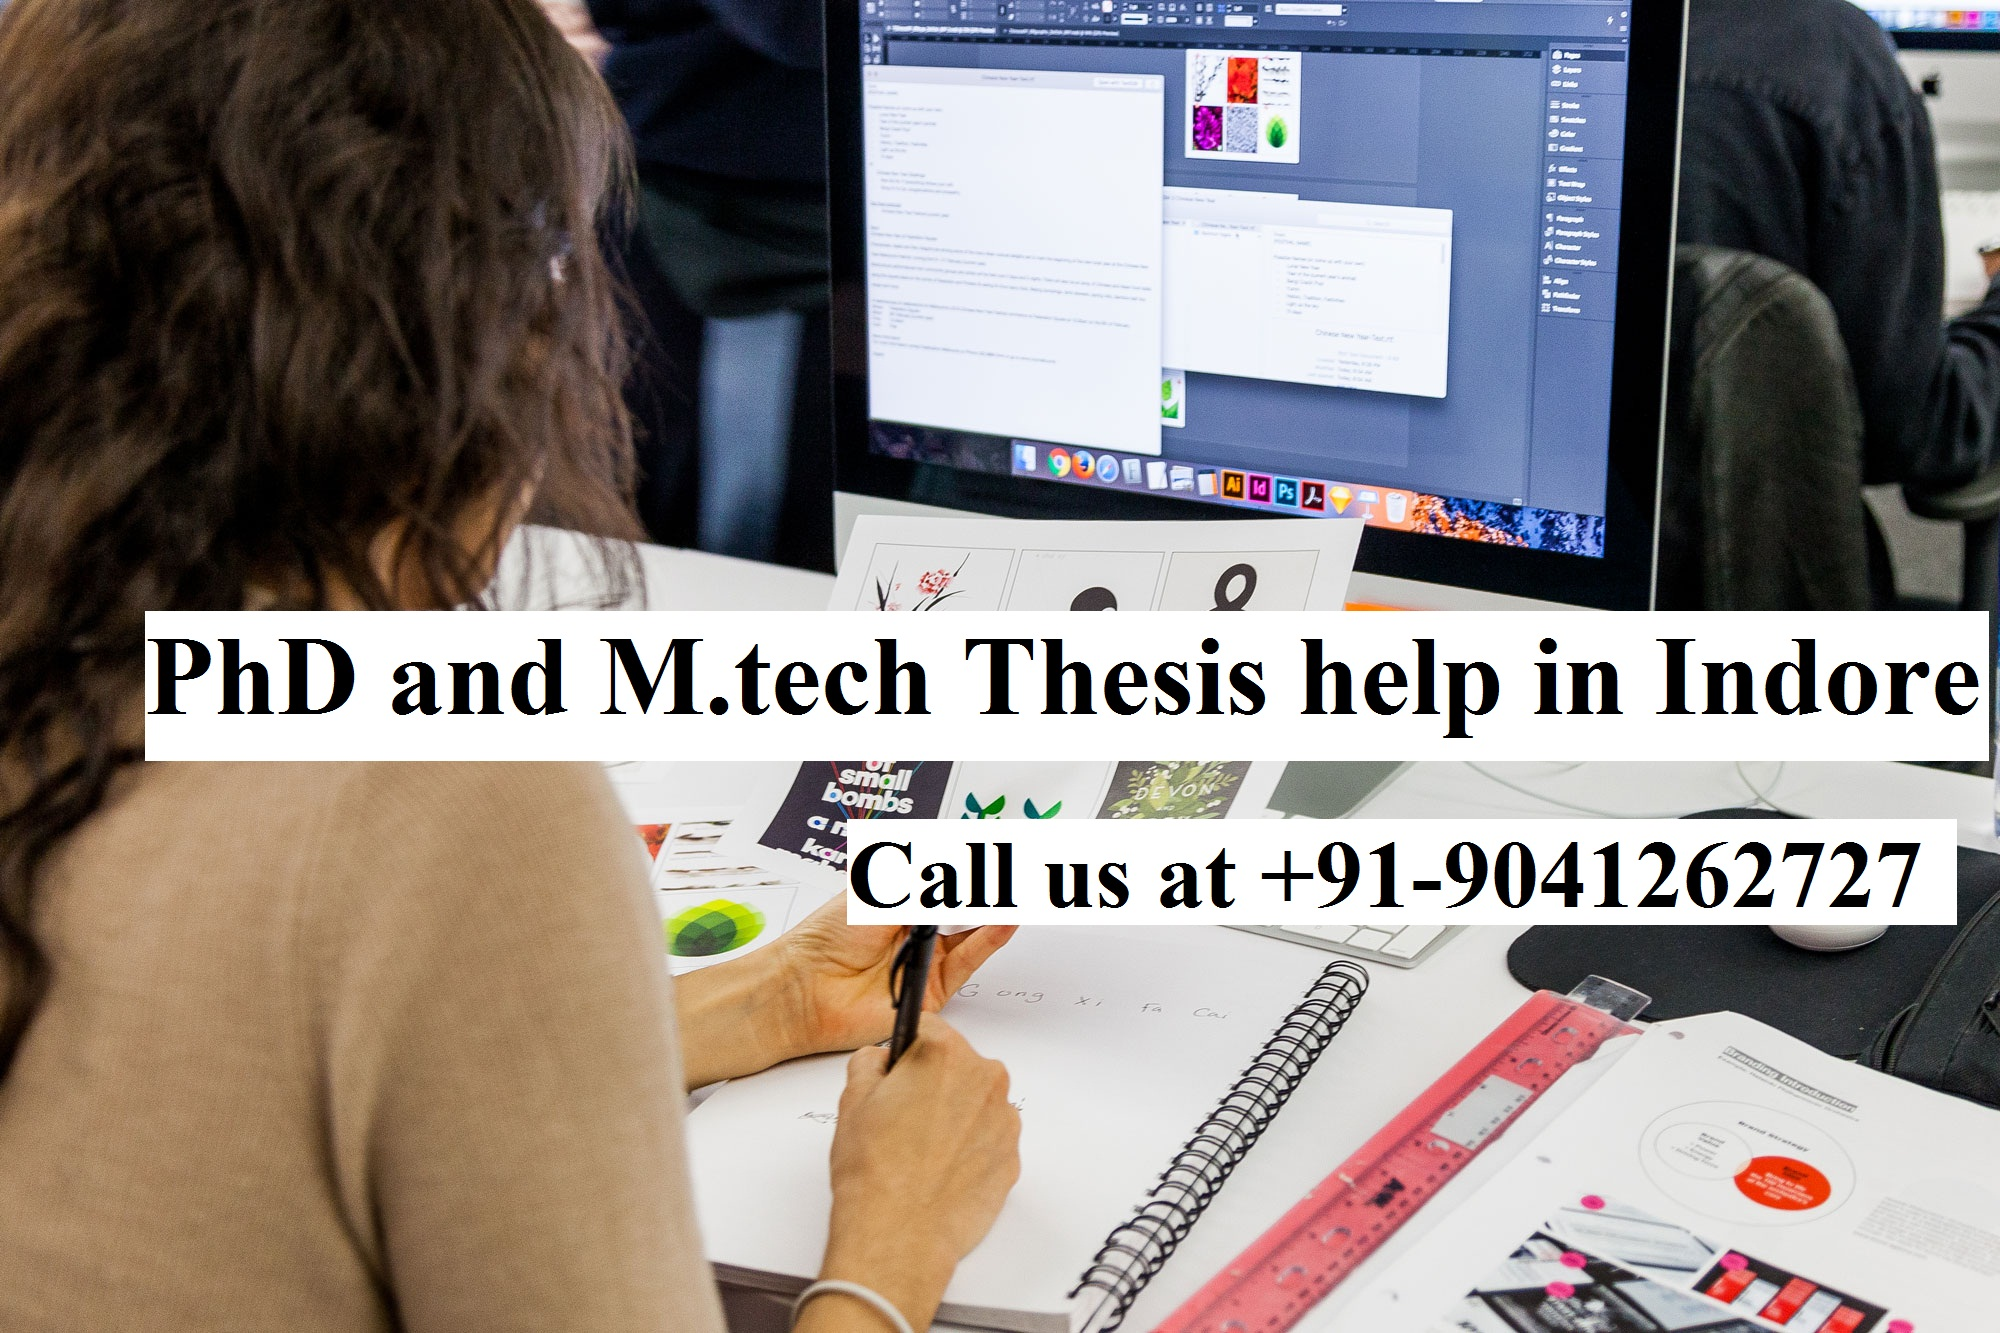 PhD and M.tech thesis help in Indore, Madhya Pradesh (MP)